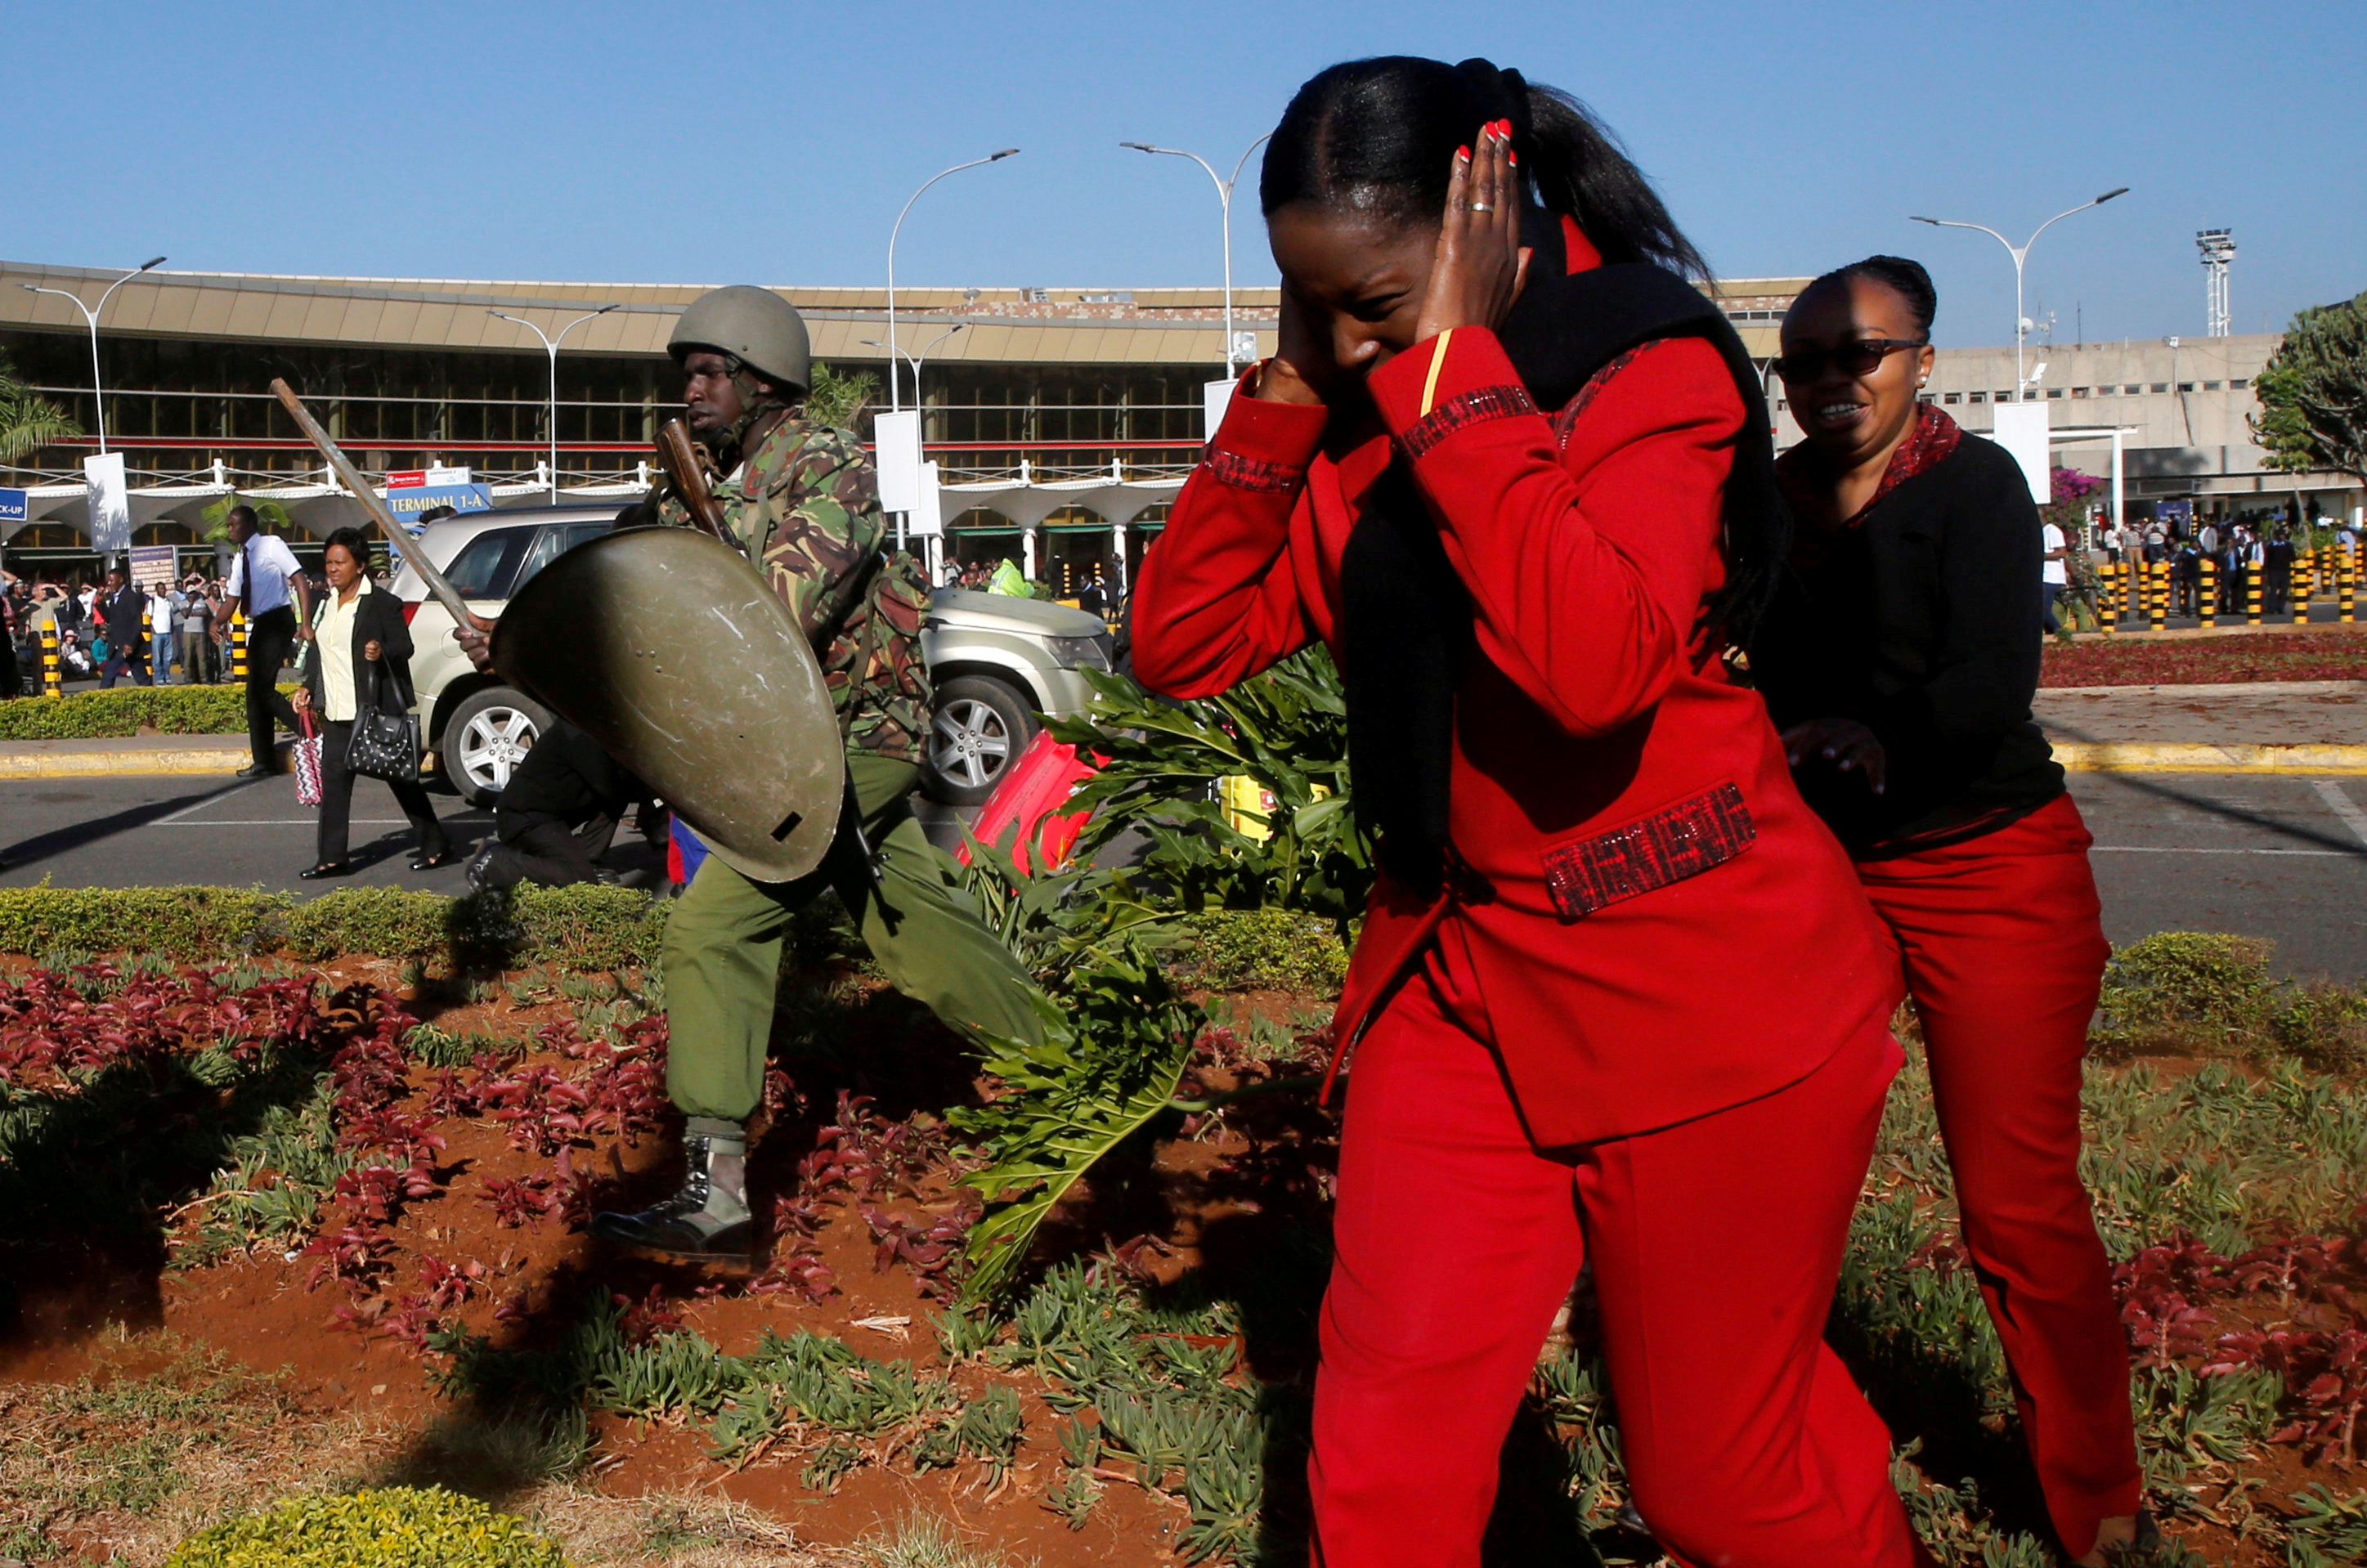 Kenya Airways workers are dispersed by riot police officers at the Jomo Kenyatta International Airport during a labour dispute that grounded flights near Nairobi, Kenya March 6, 2019.